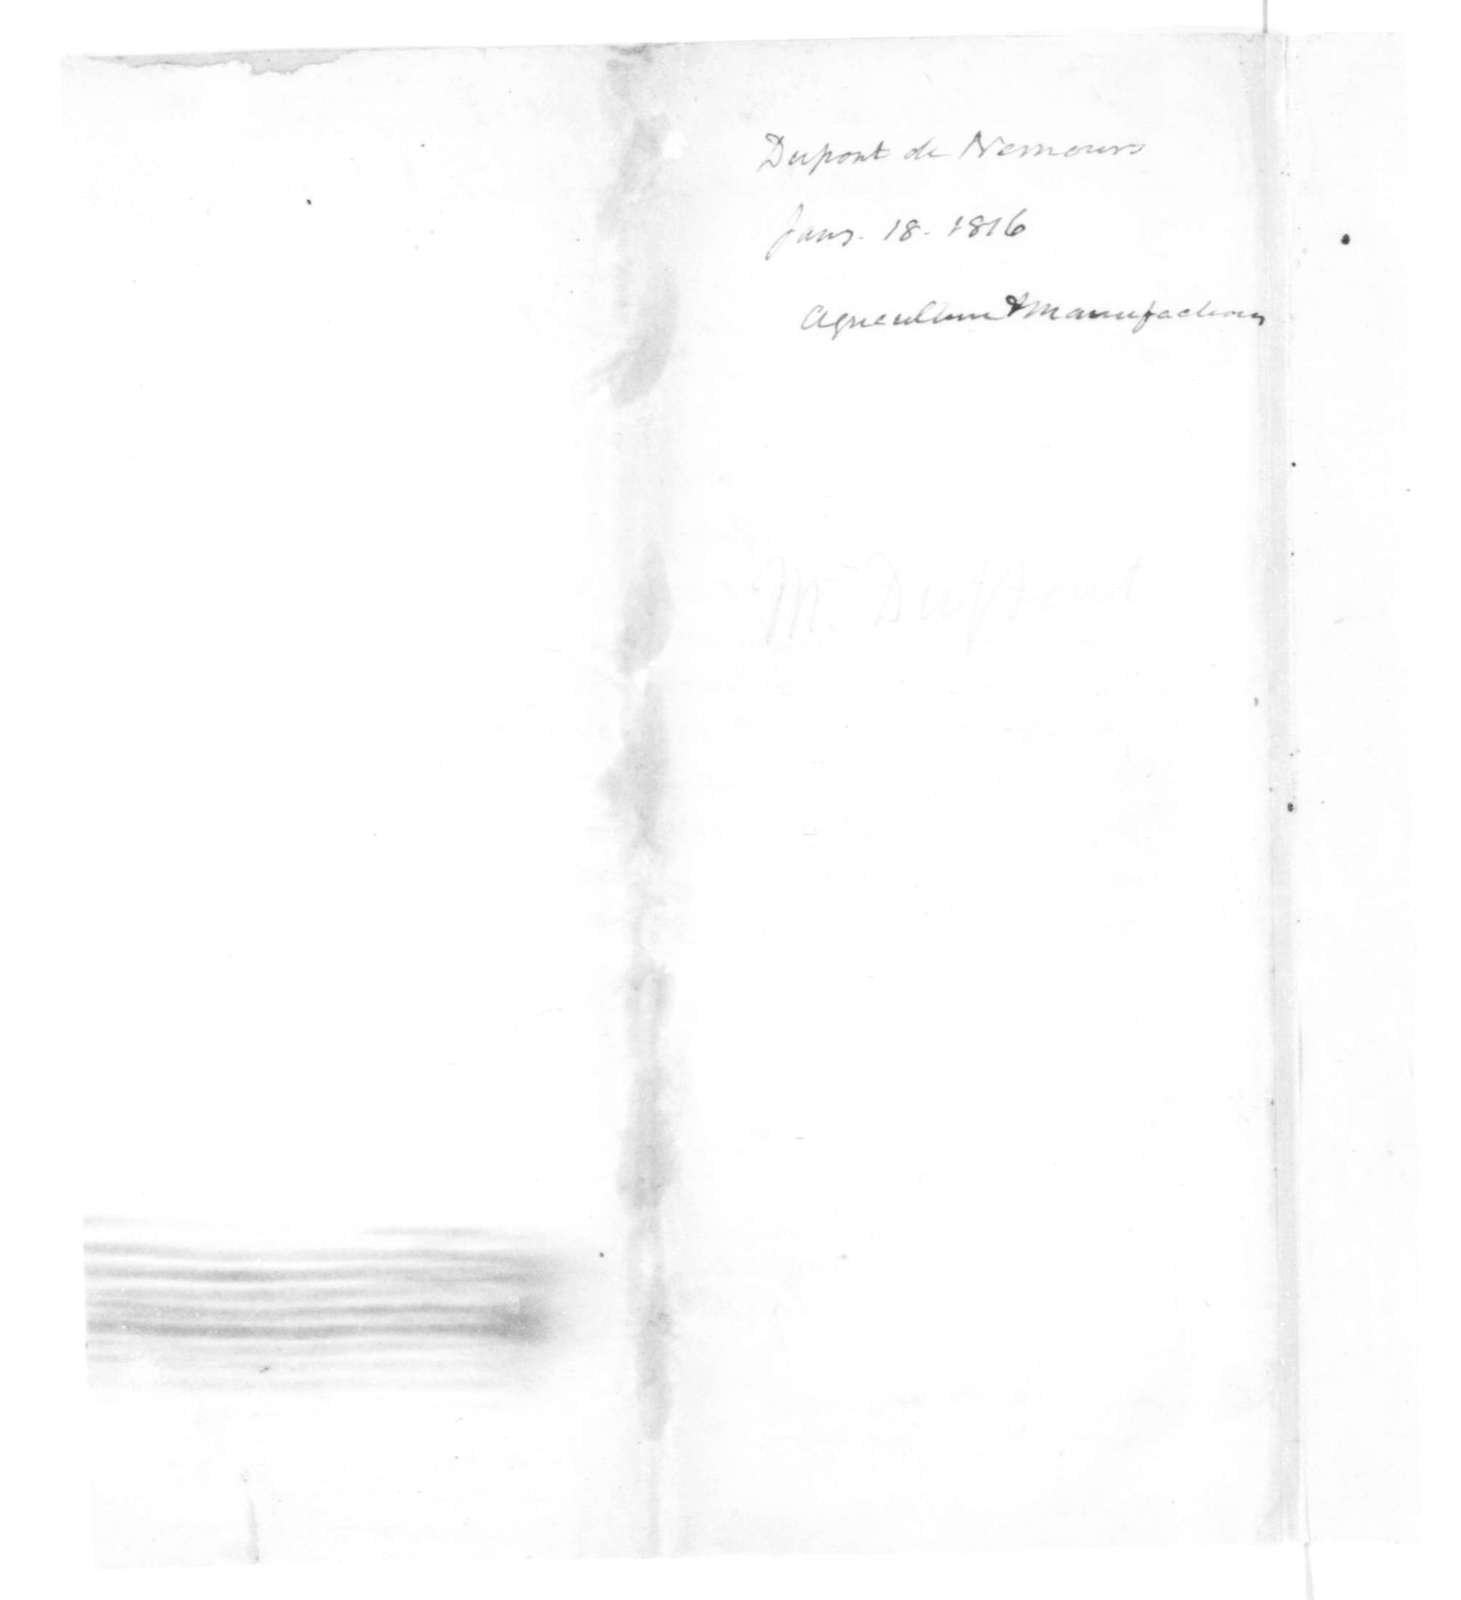 Dupont de Nemours to James Madison, January 18, 1816. & Circ-Agri-In French.